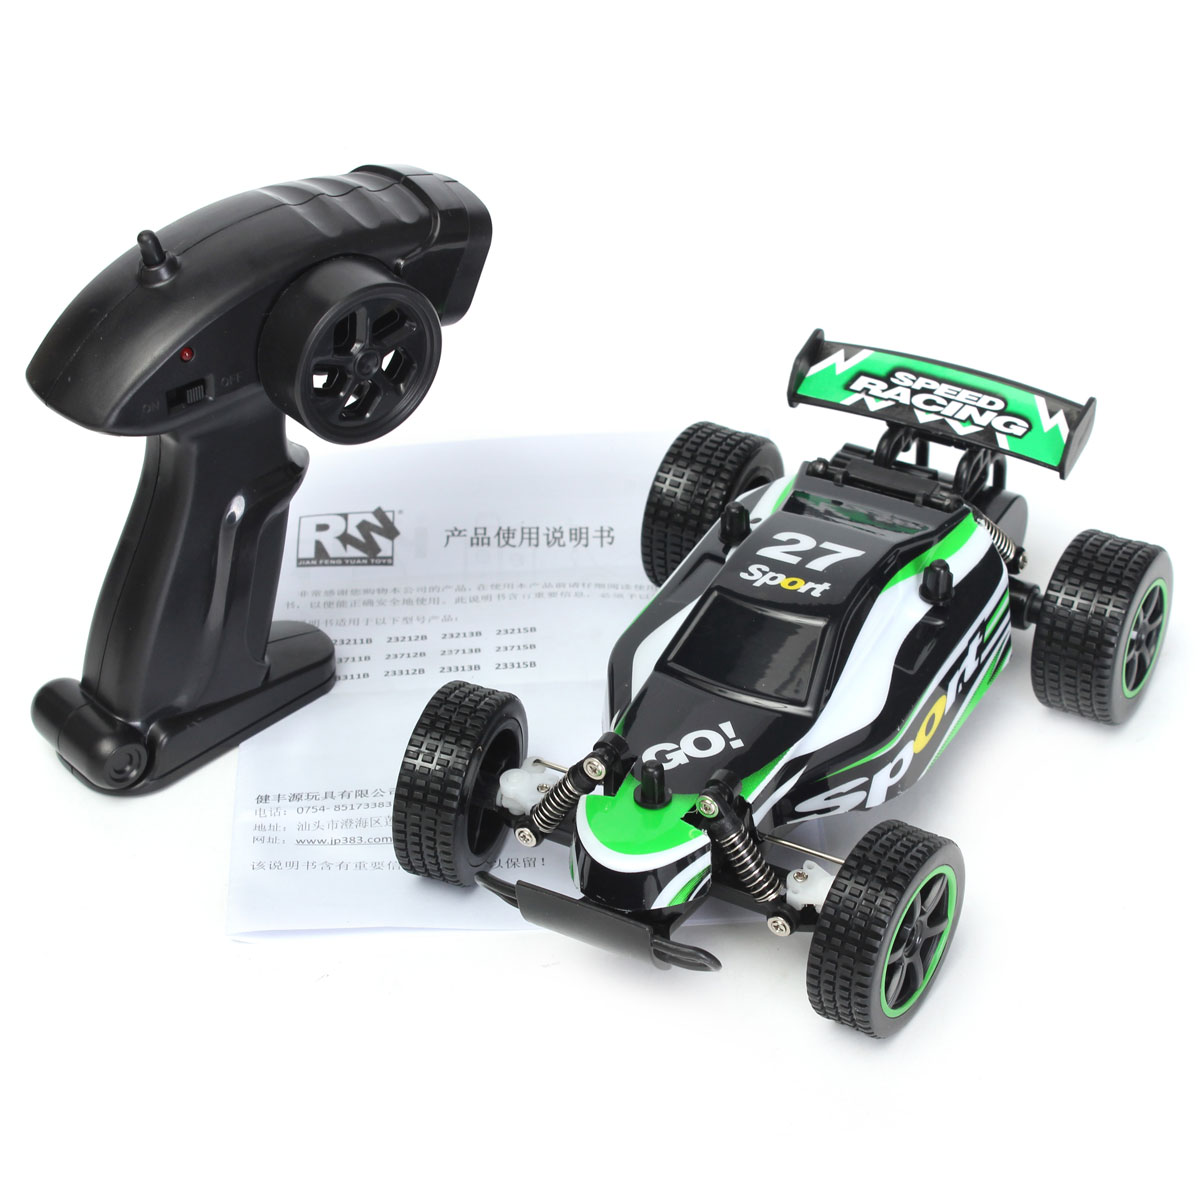 Lithium Car Battery >> 1/20 2WD 2.4G High Speed RC Racing Buggy Car Off Road RTR | Alexnld.com